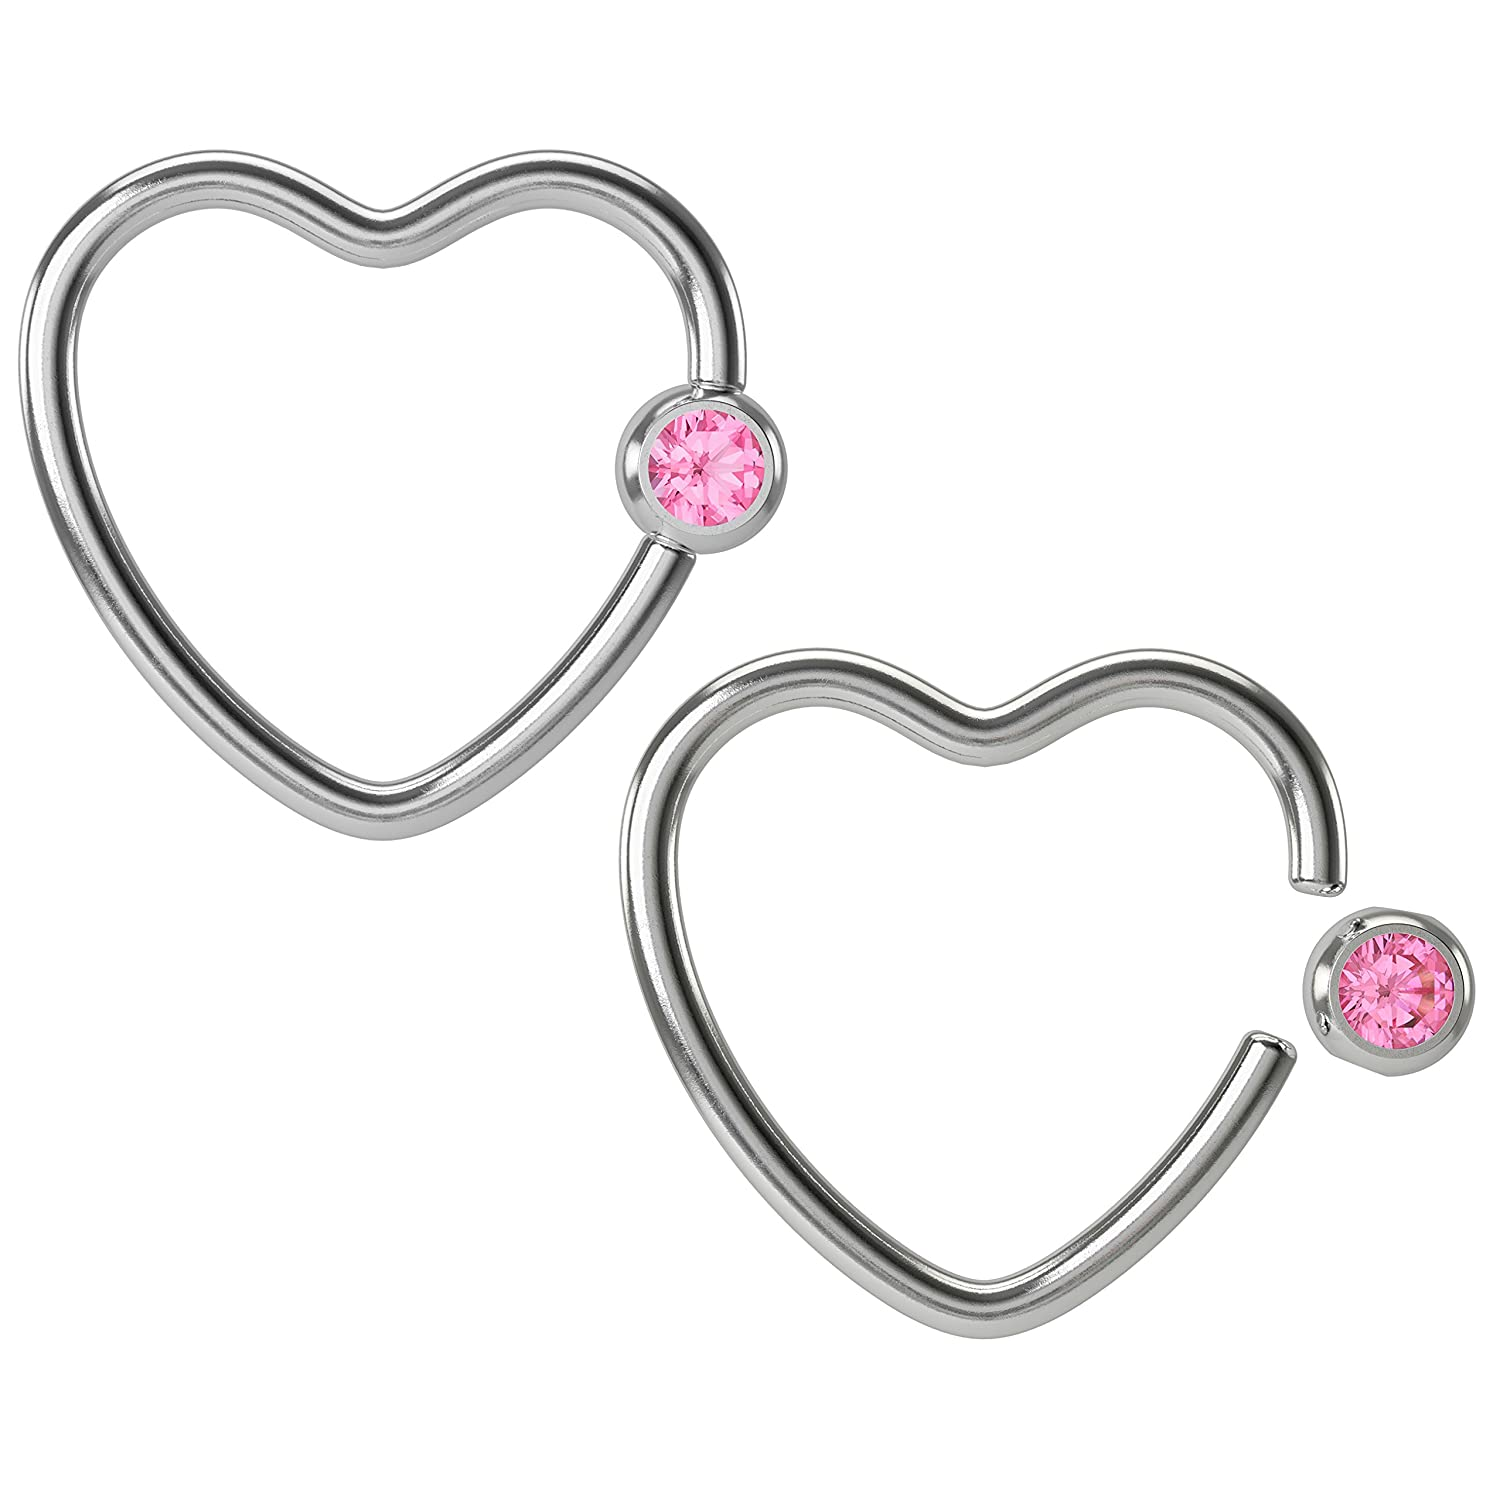 Bling Unique 2 16g Heart Captive Bead Ring Hoop Earring CBR Cartilage Daith Helix Surgical Steel Auricle Crystal